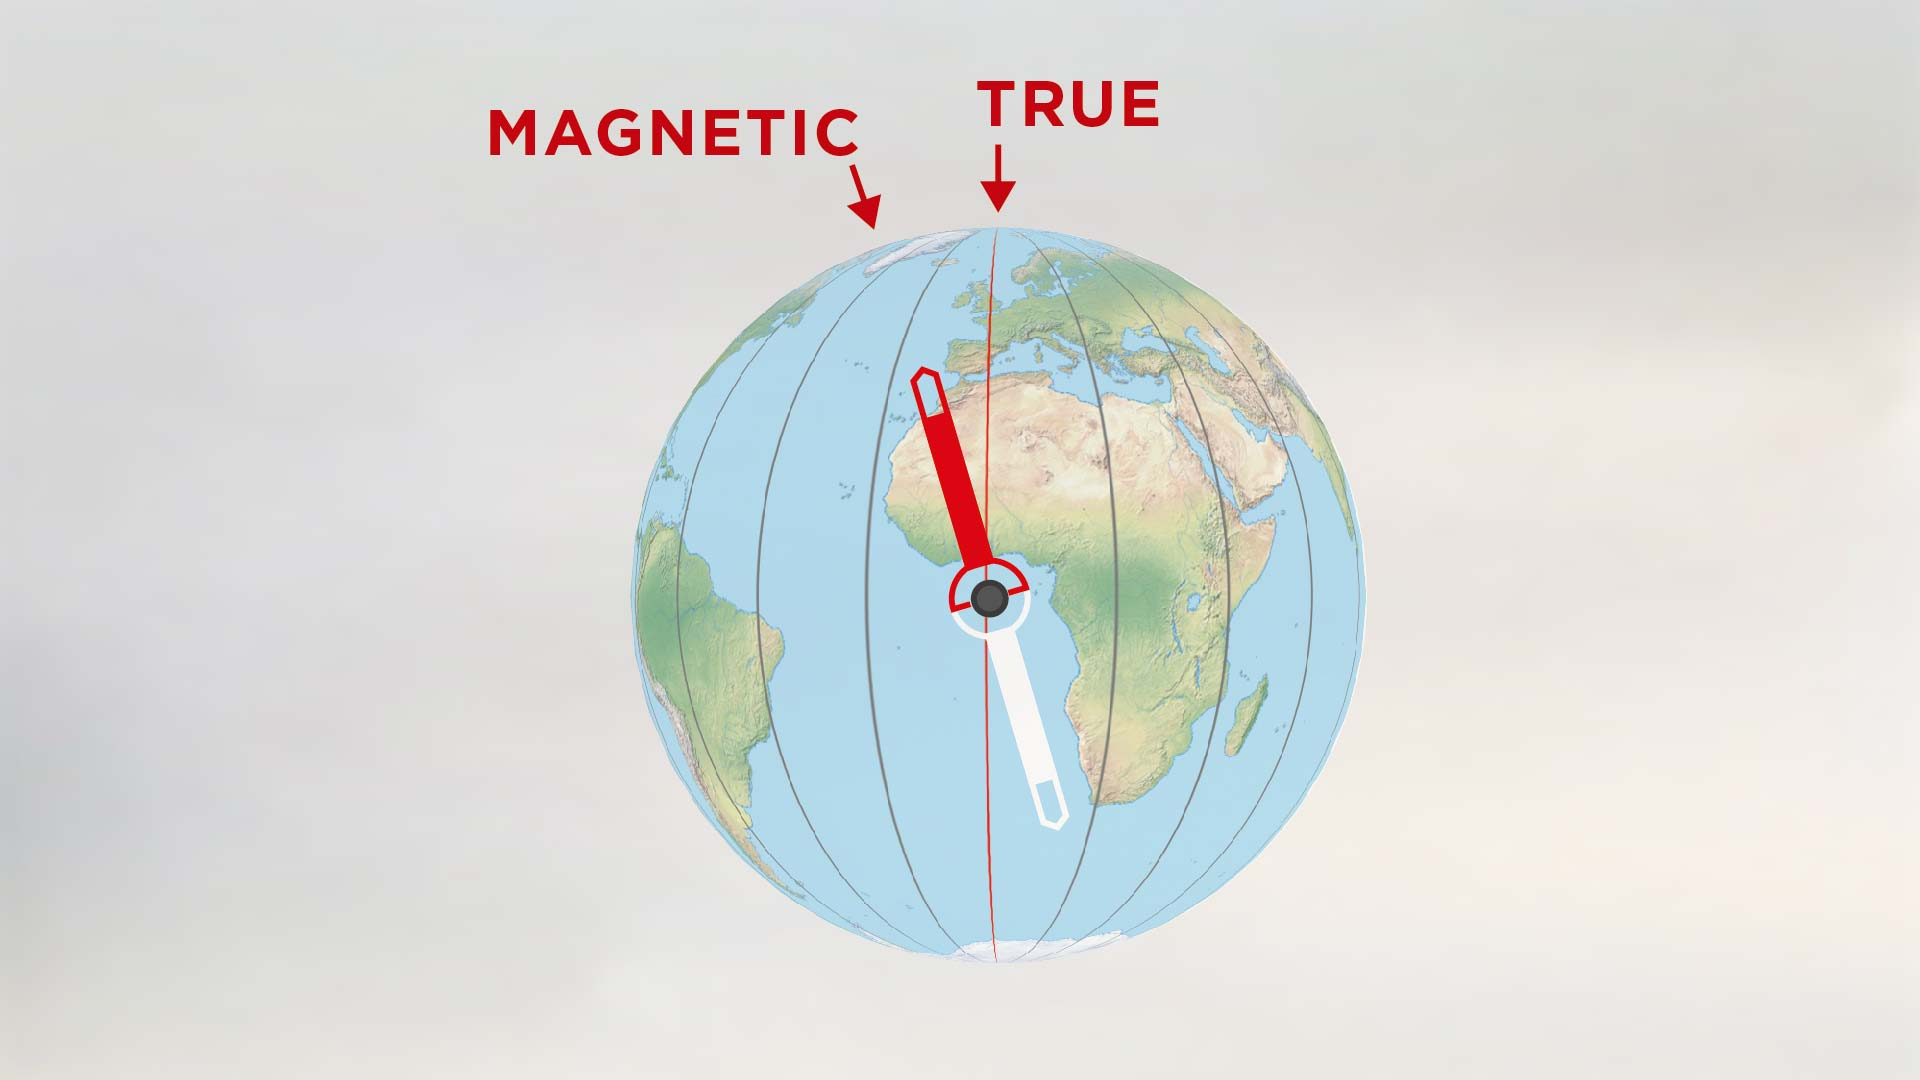 Magnetic North  is not exactly at the north pole, it's slightly off and this is where the red part of the magnetic needle points.